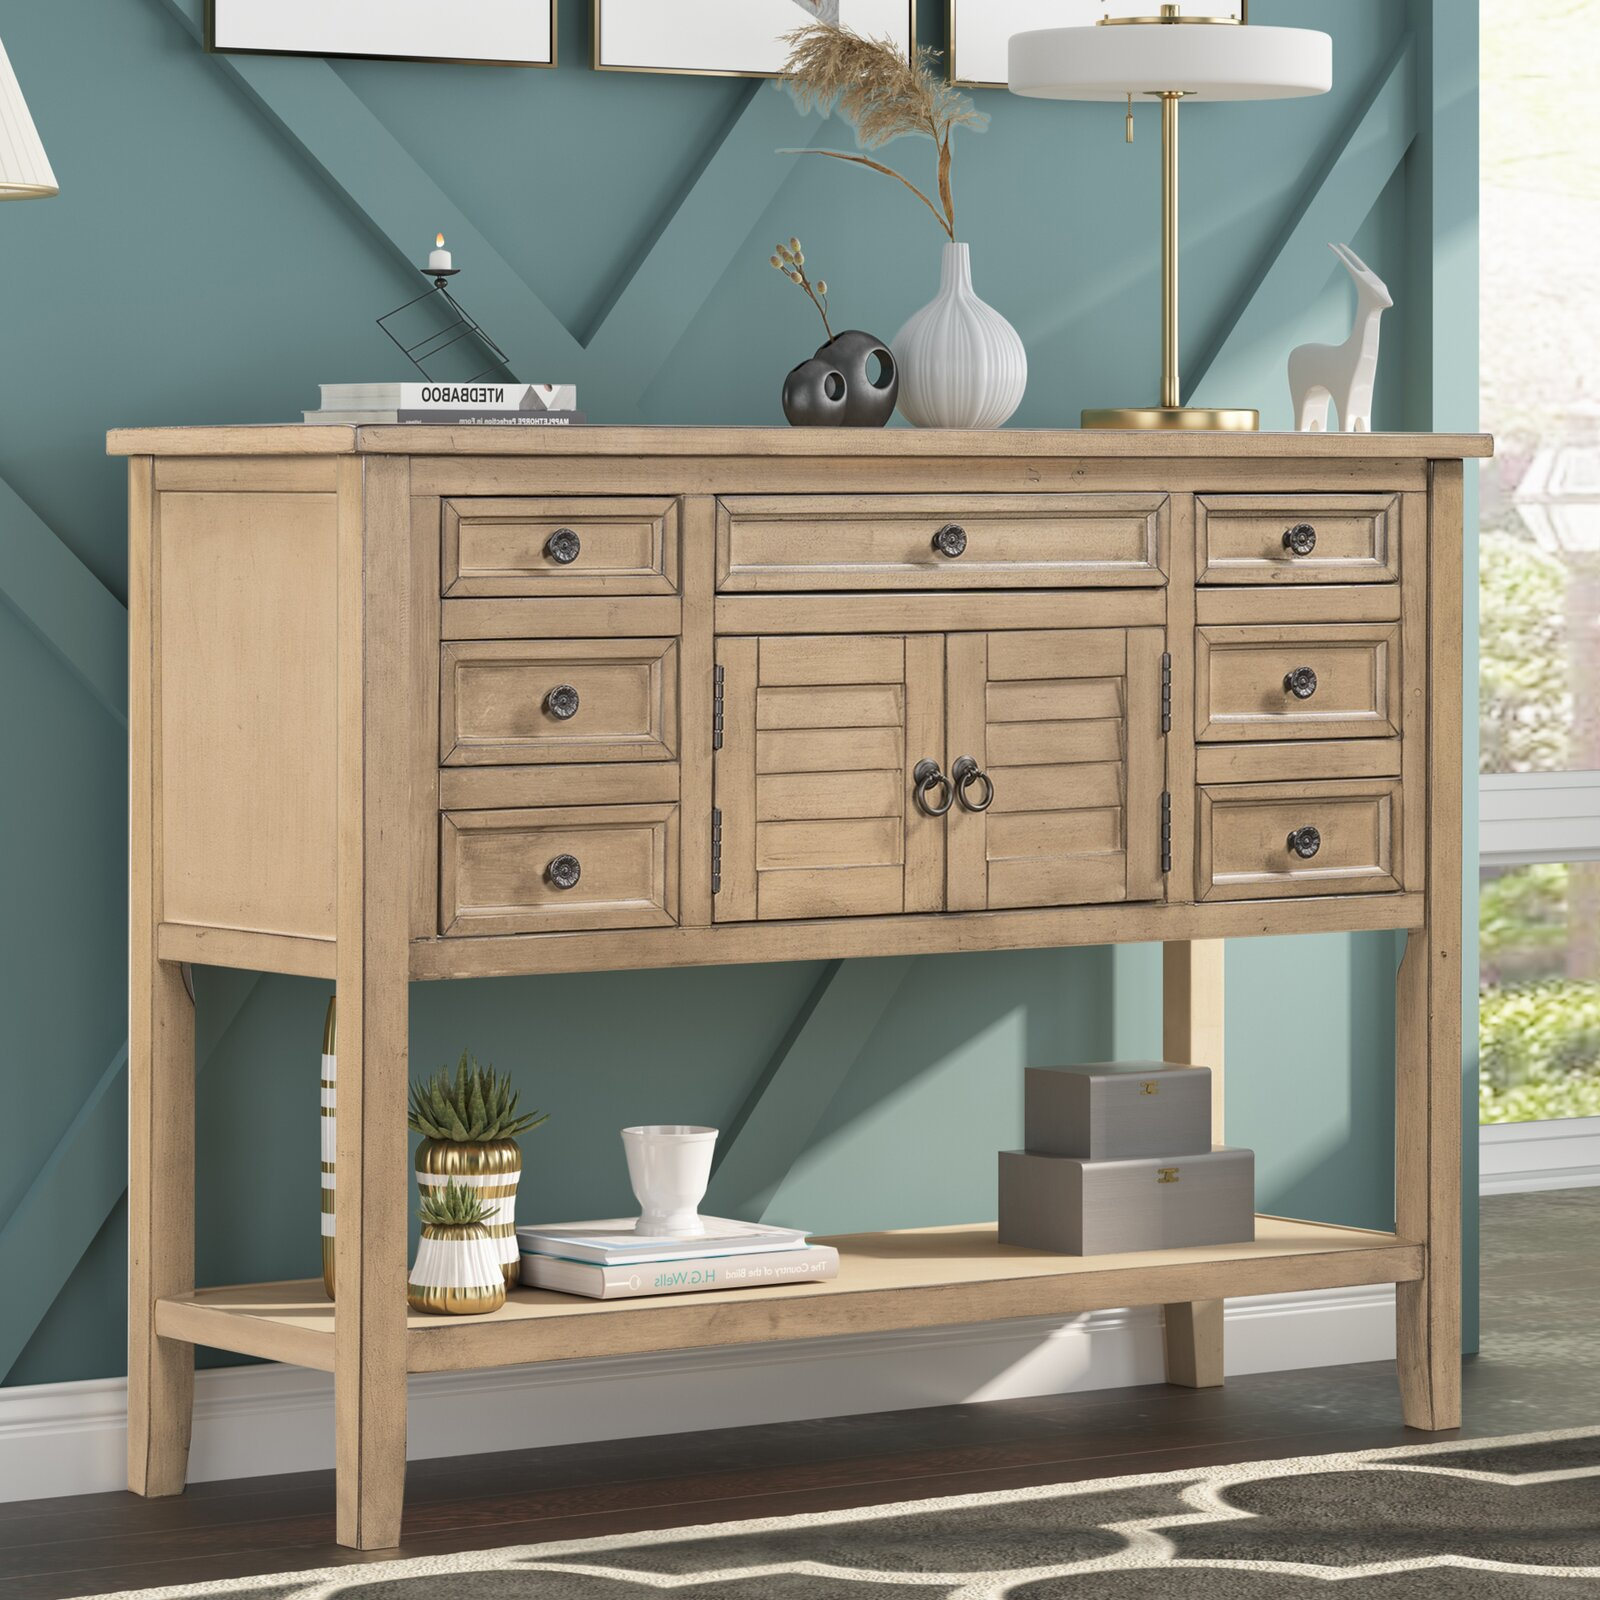 Console With Multiple Drawers for Extra Storage